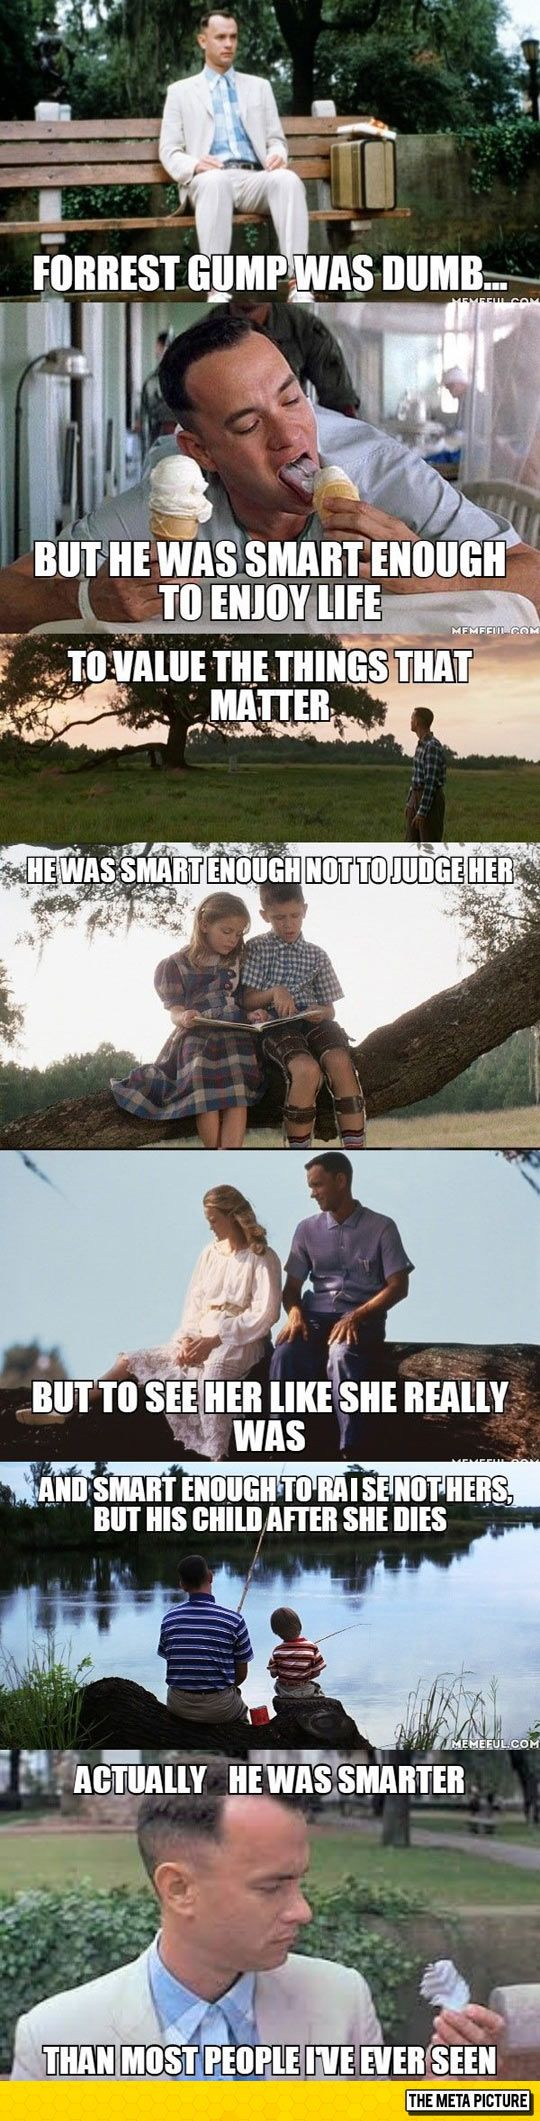 Forrest Gump Wasn't Just The Story Of A Dumb Guy